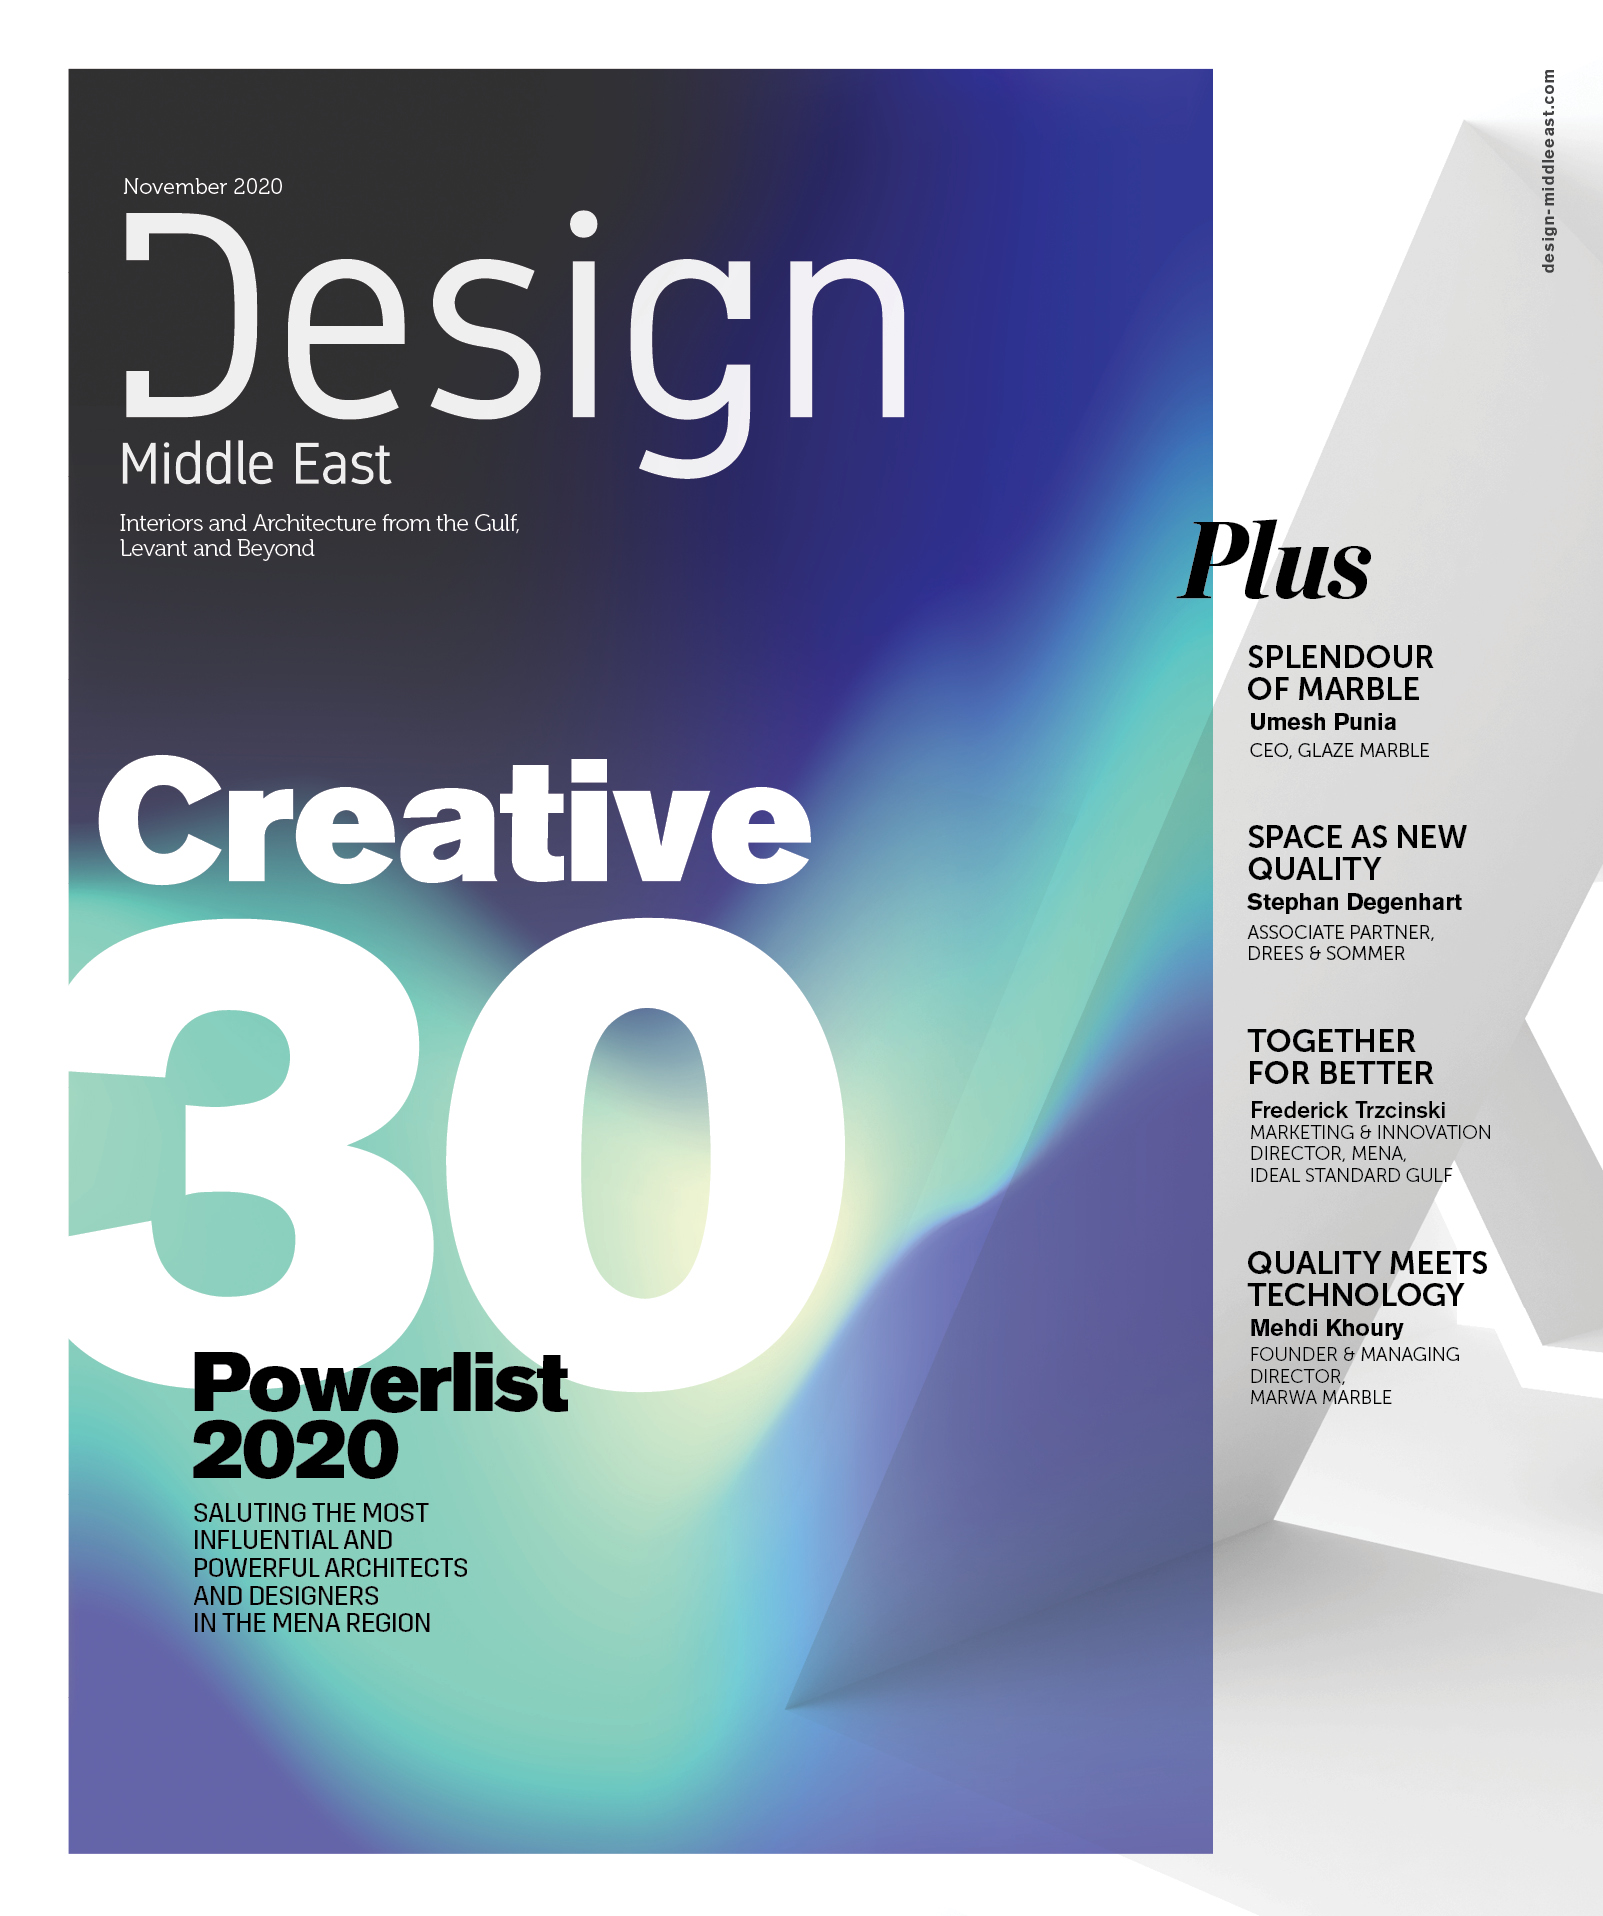 https://www.cbnme.com/magazines/design-me-november-2020/